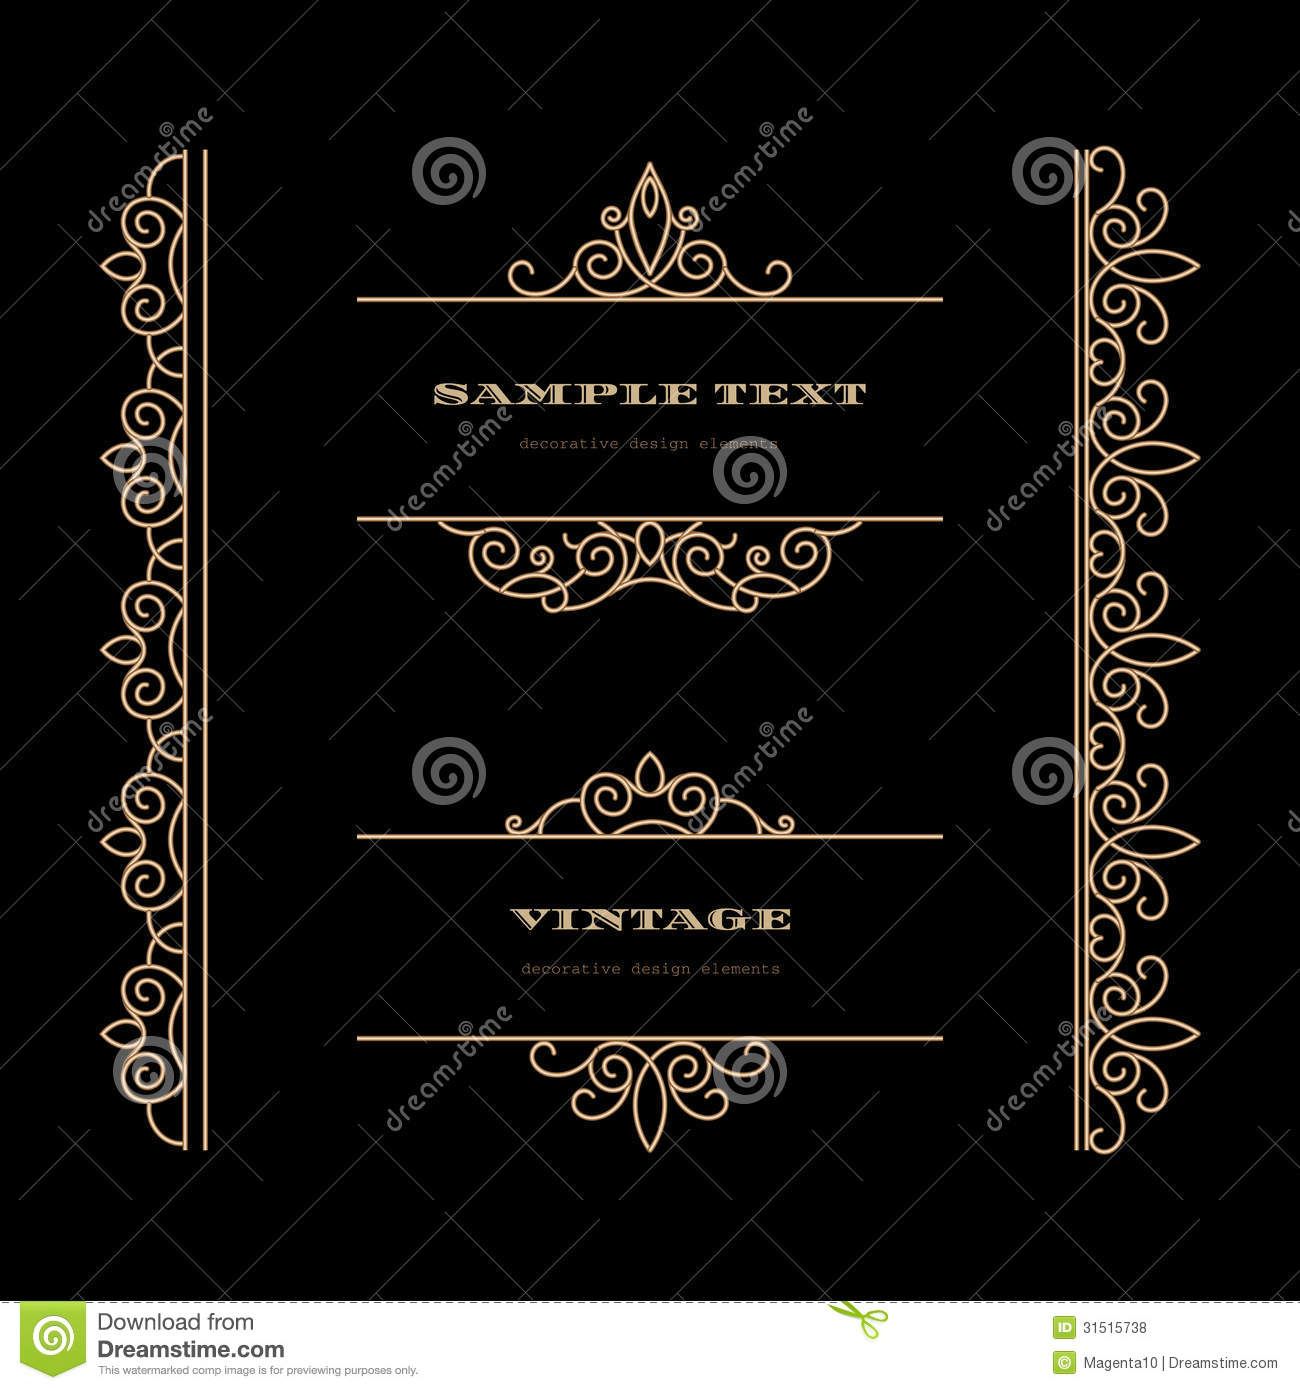 Vintage elements and borders set for ornate and decoration stock - Gold Frames And Borders Set Royalty Free Stock Photos